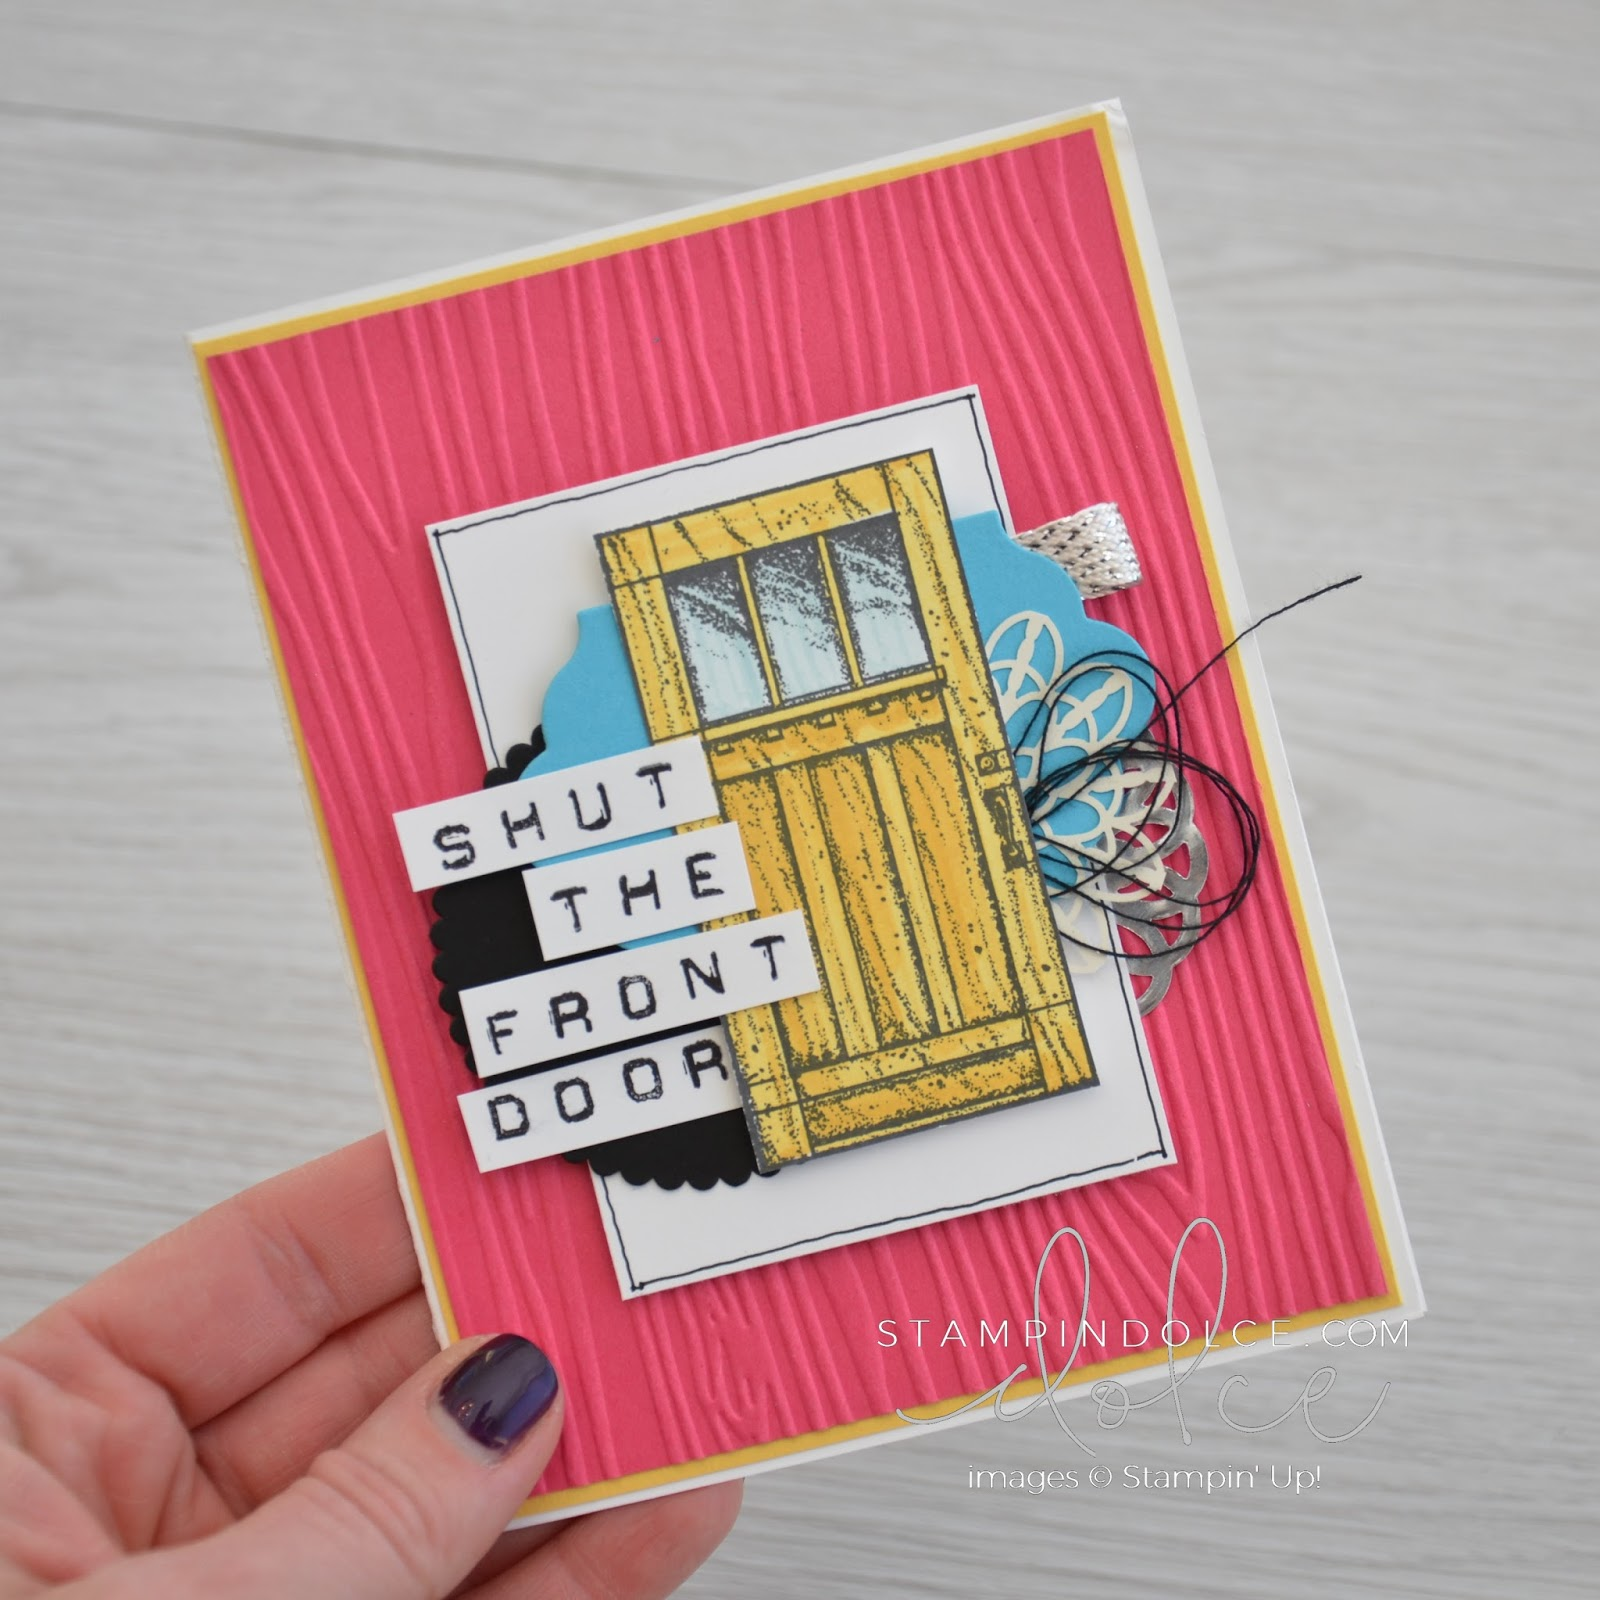 Where Did Shut The Front Door Come From: Stampin' Dolce: Shut The Front Door